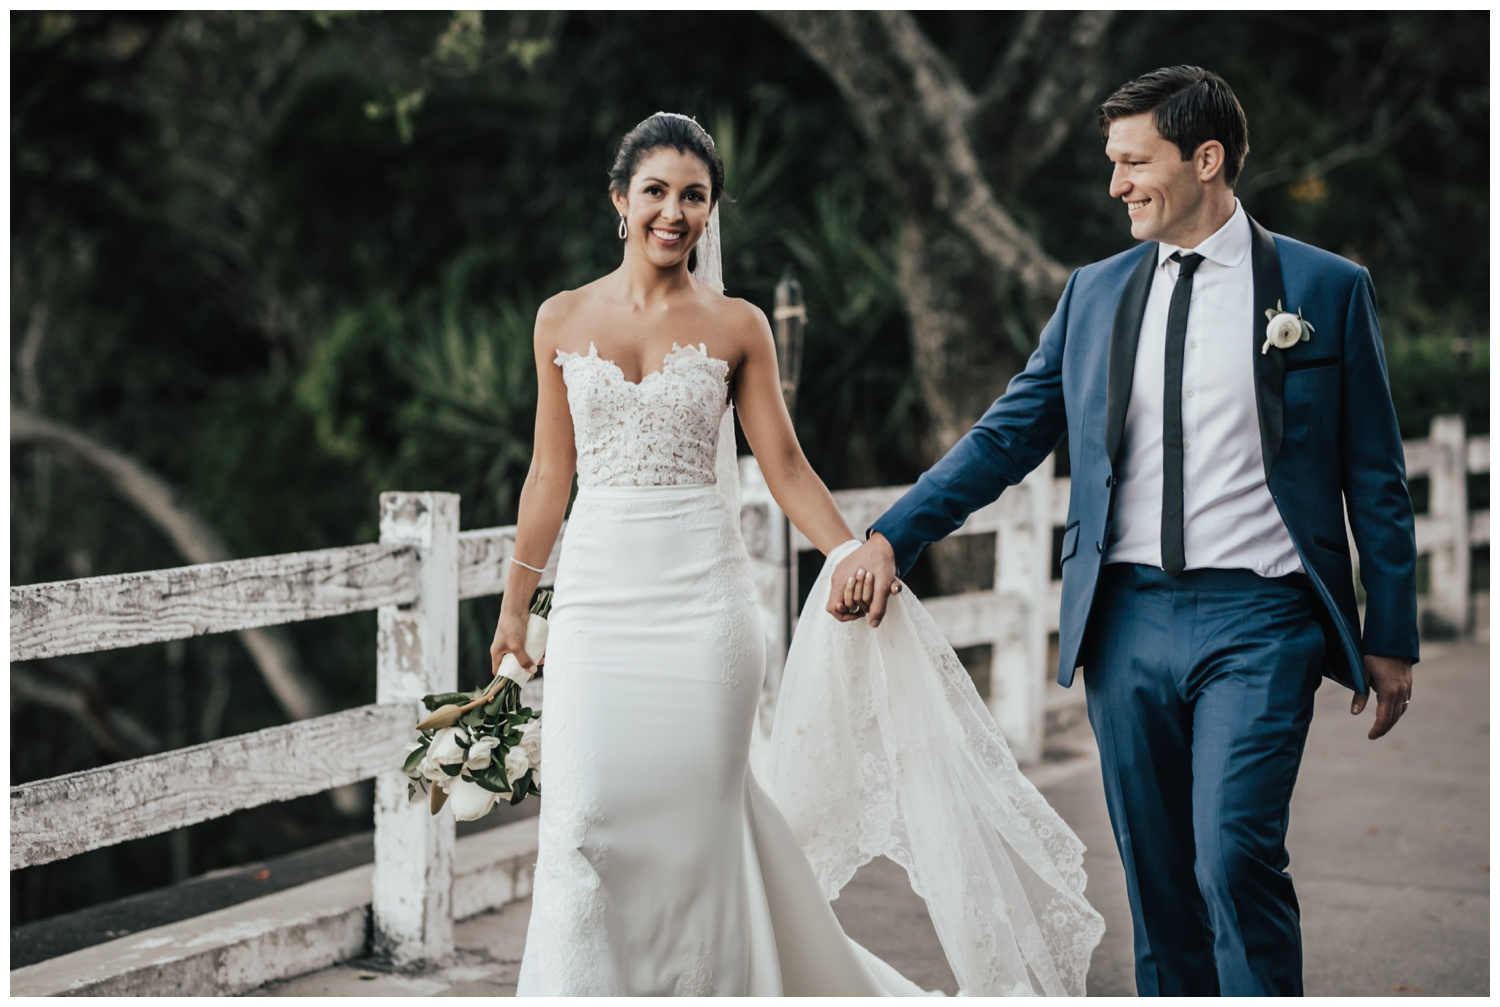 adriana_rivera_miranda_weddings_el_salvador_37.jpg